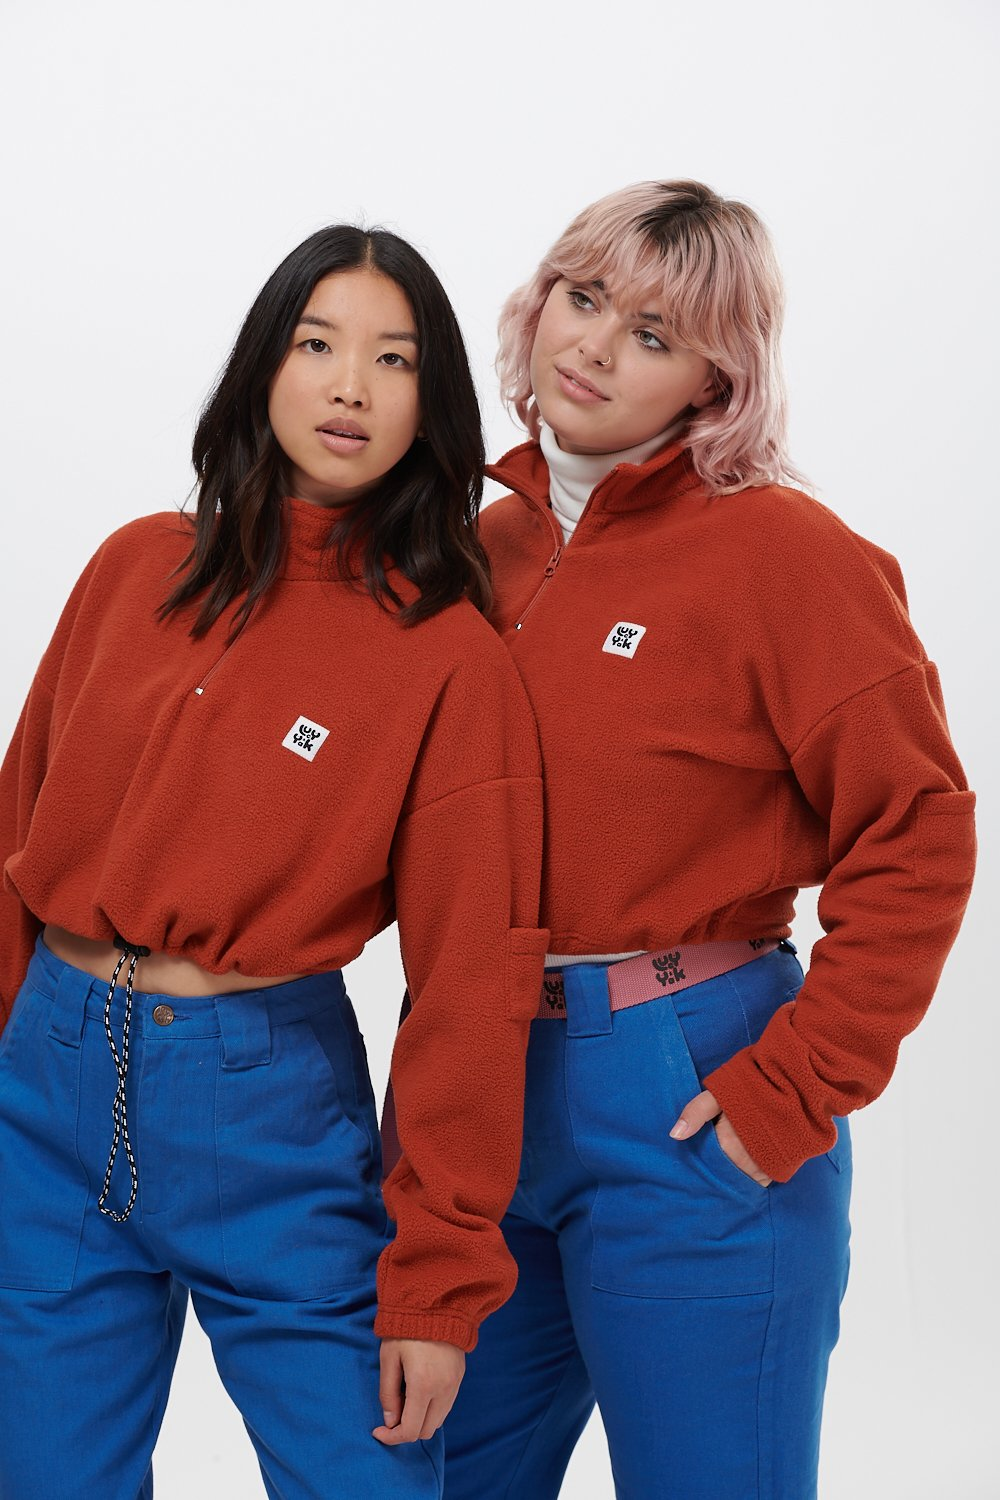 Lucy & Yak Tops 'Blake' Cropped Fleece in Rust Orange